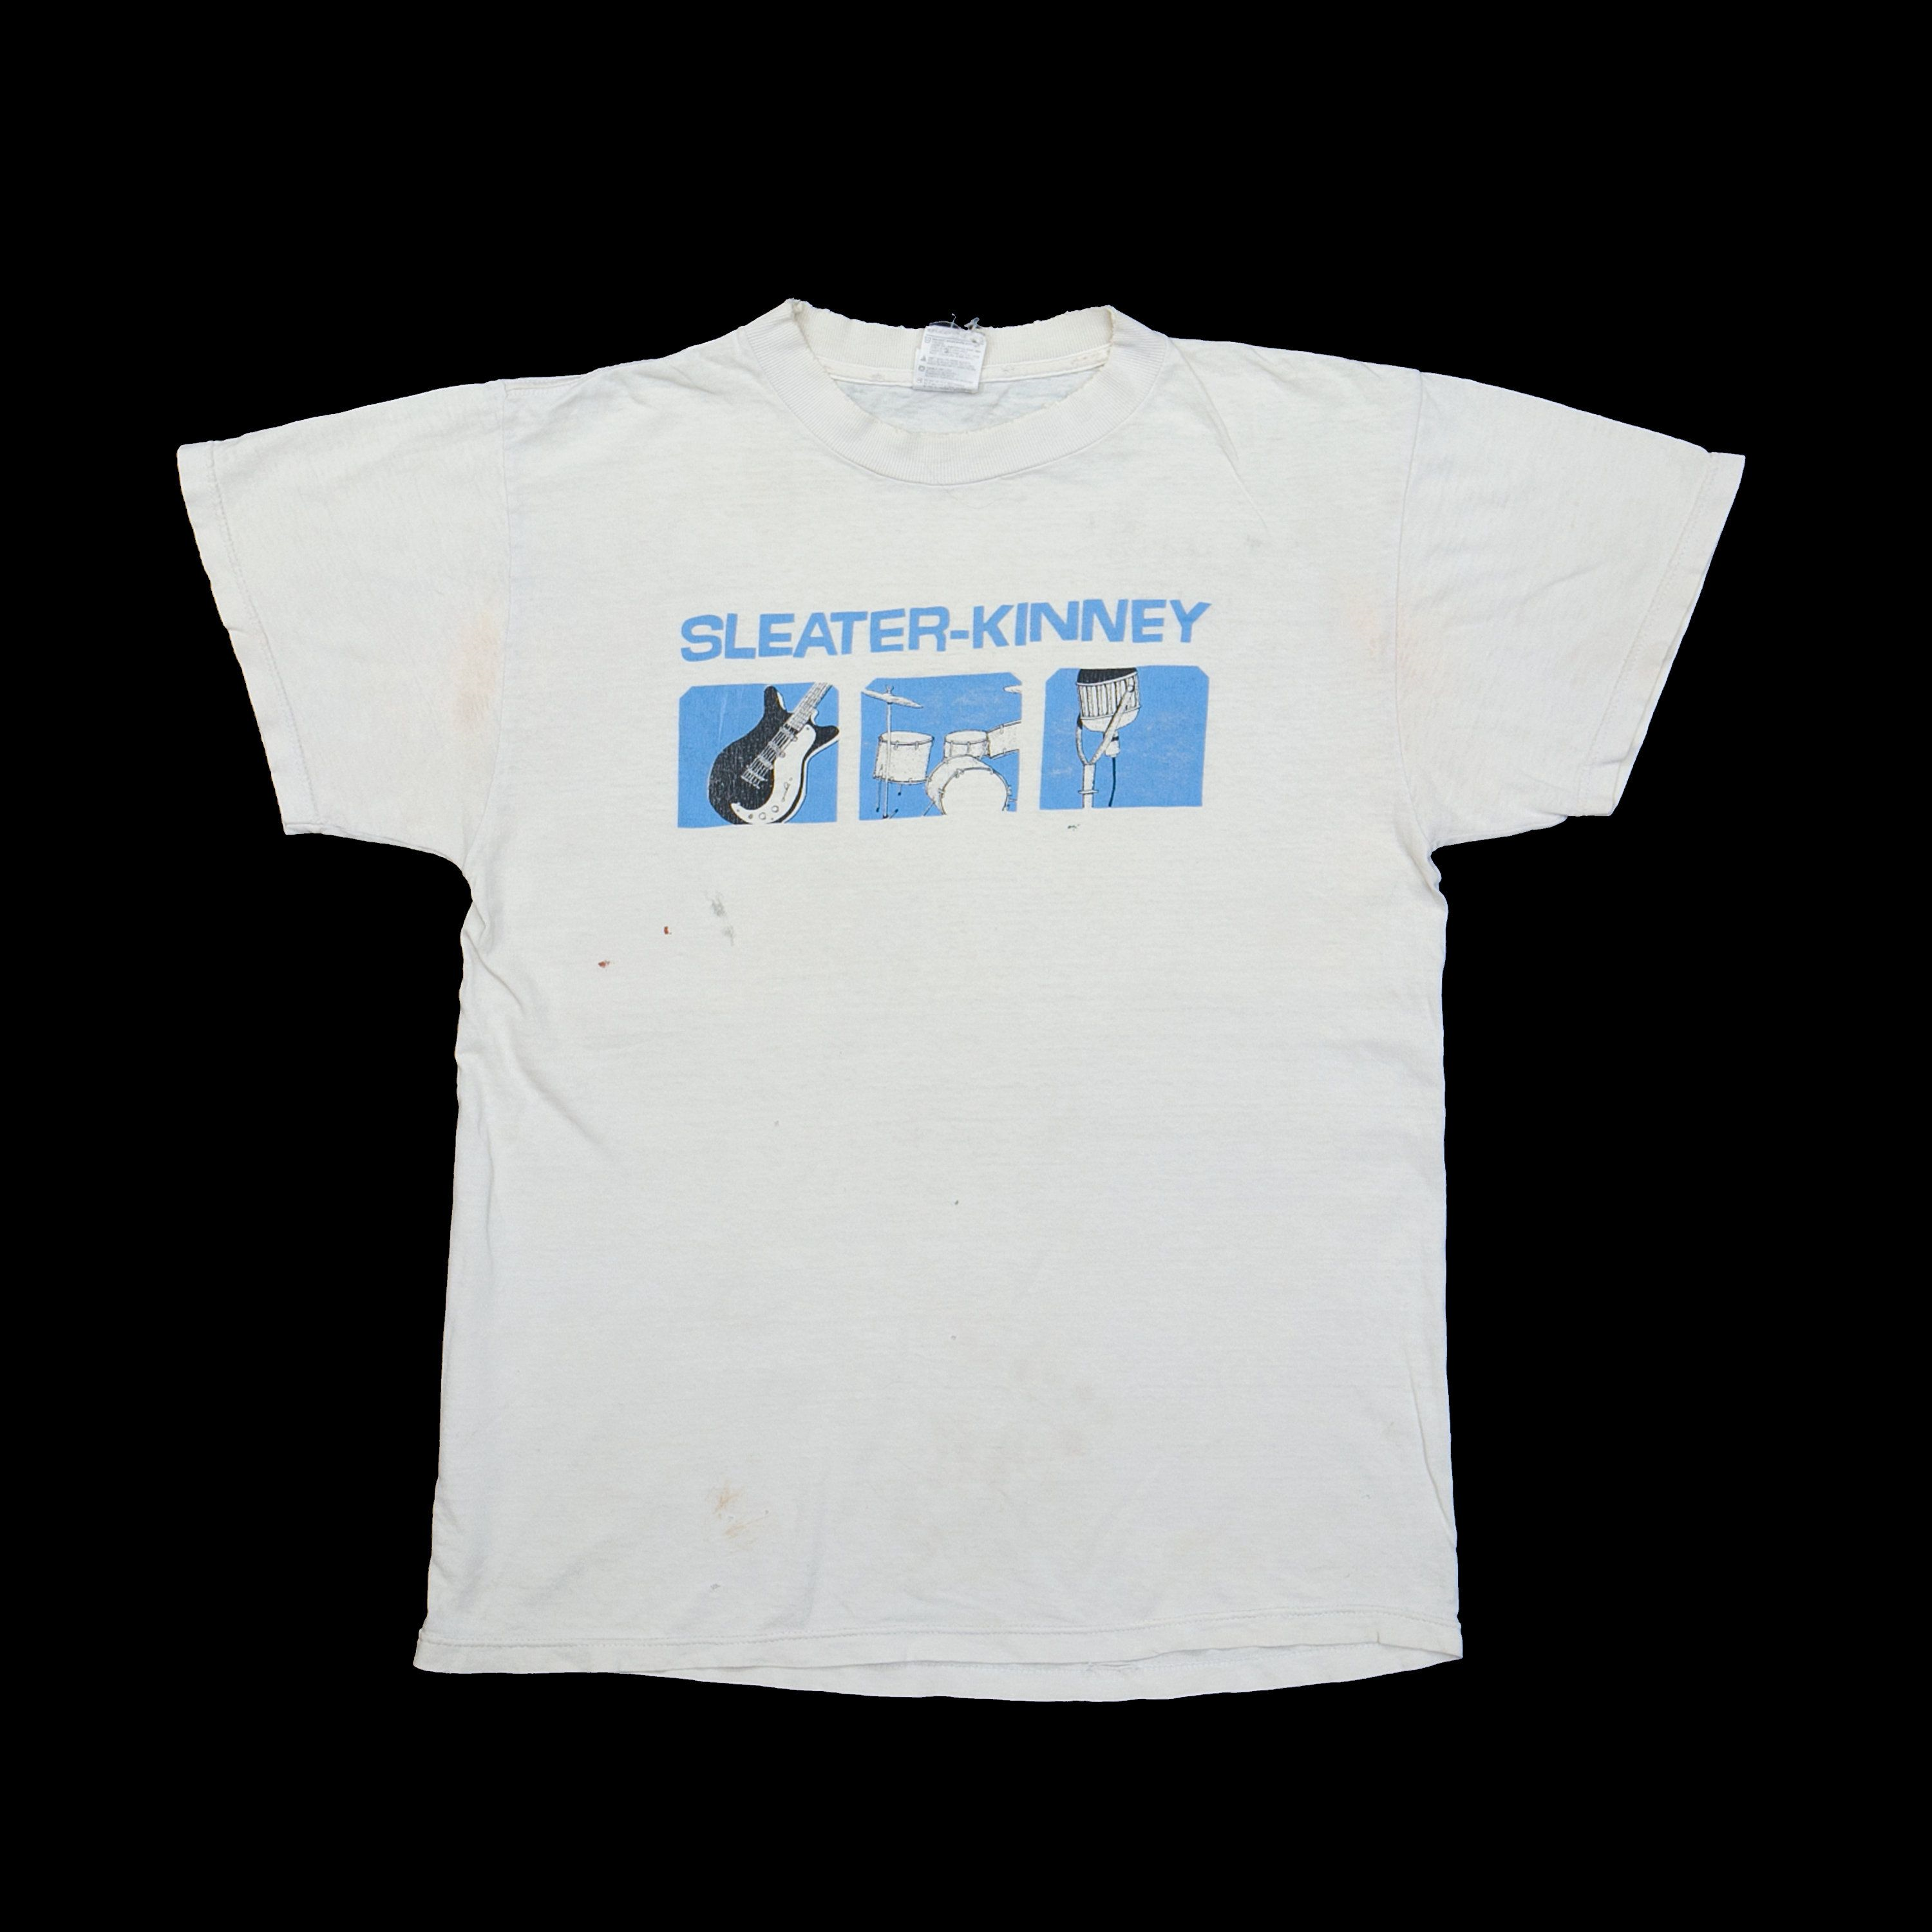 A white t-shirt with a blue design in the center.